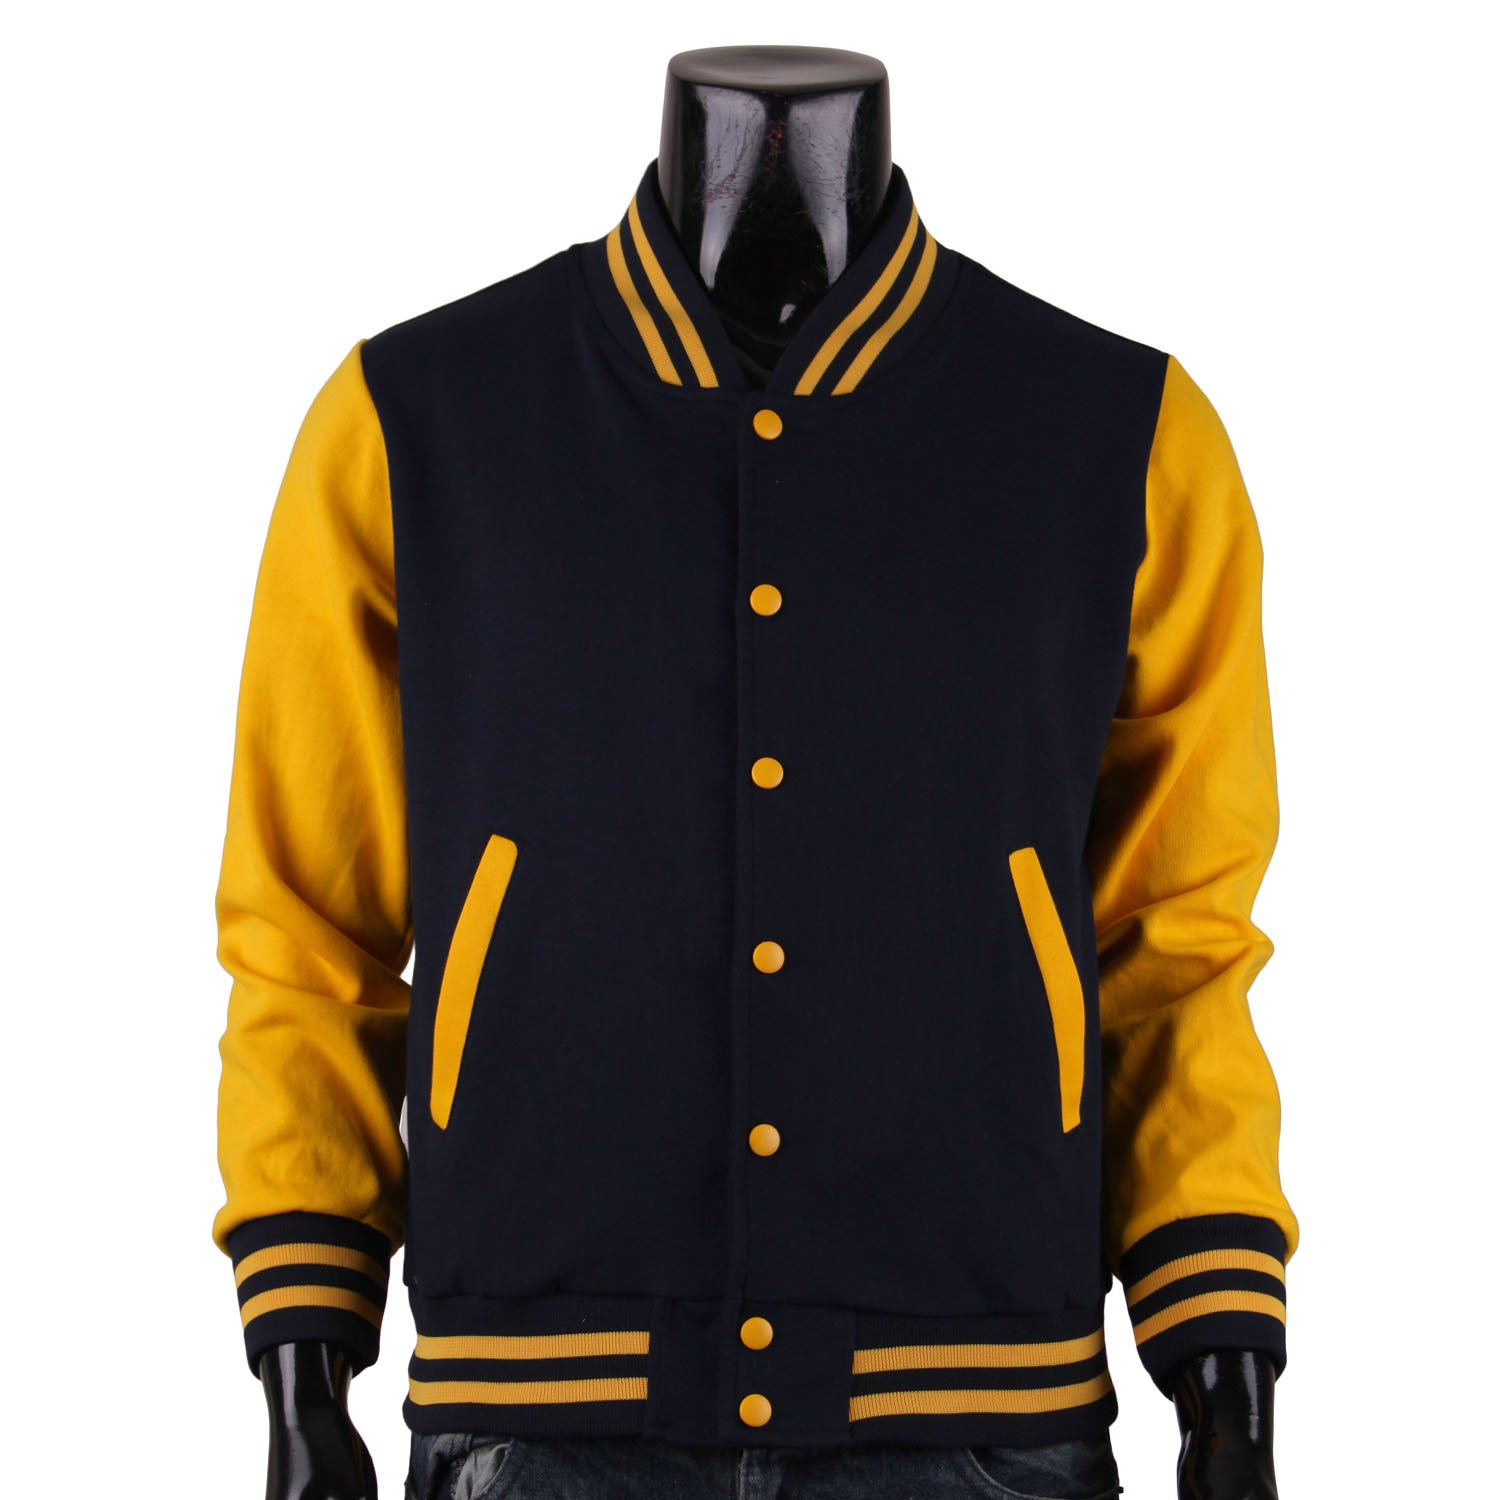 Where To Buy KR3W Mens Kr3wz Jacket